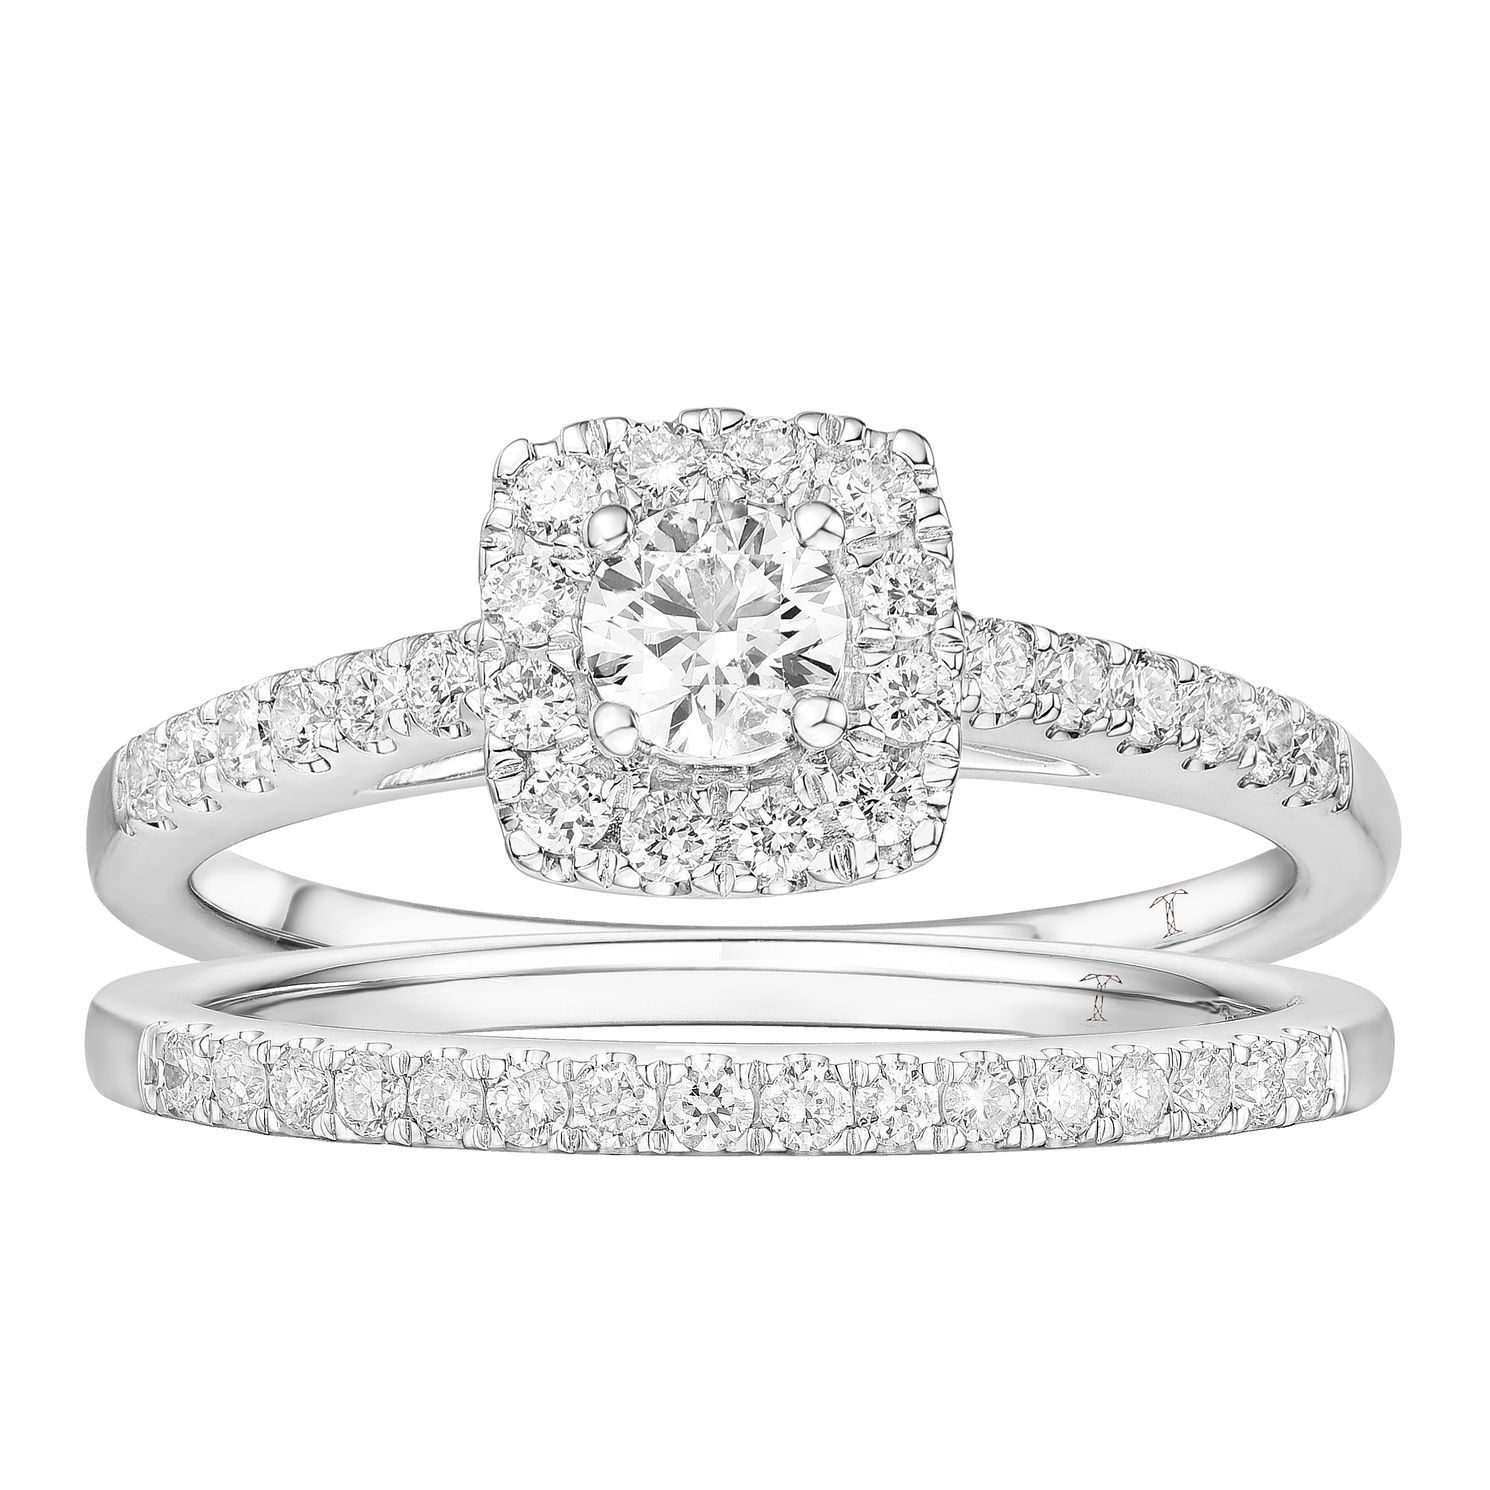 Tolkowsky 18ct White Gold 0.75ct Total Diamond Bridal Set - Product number 4507975